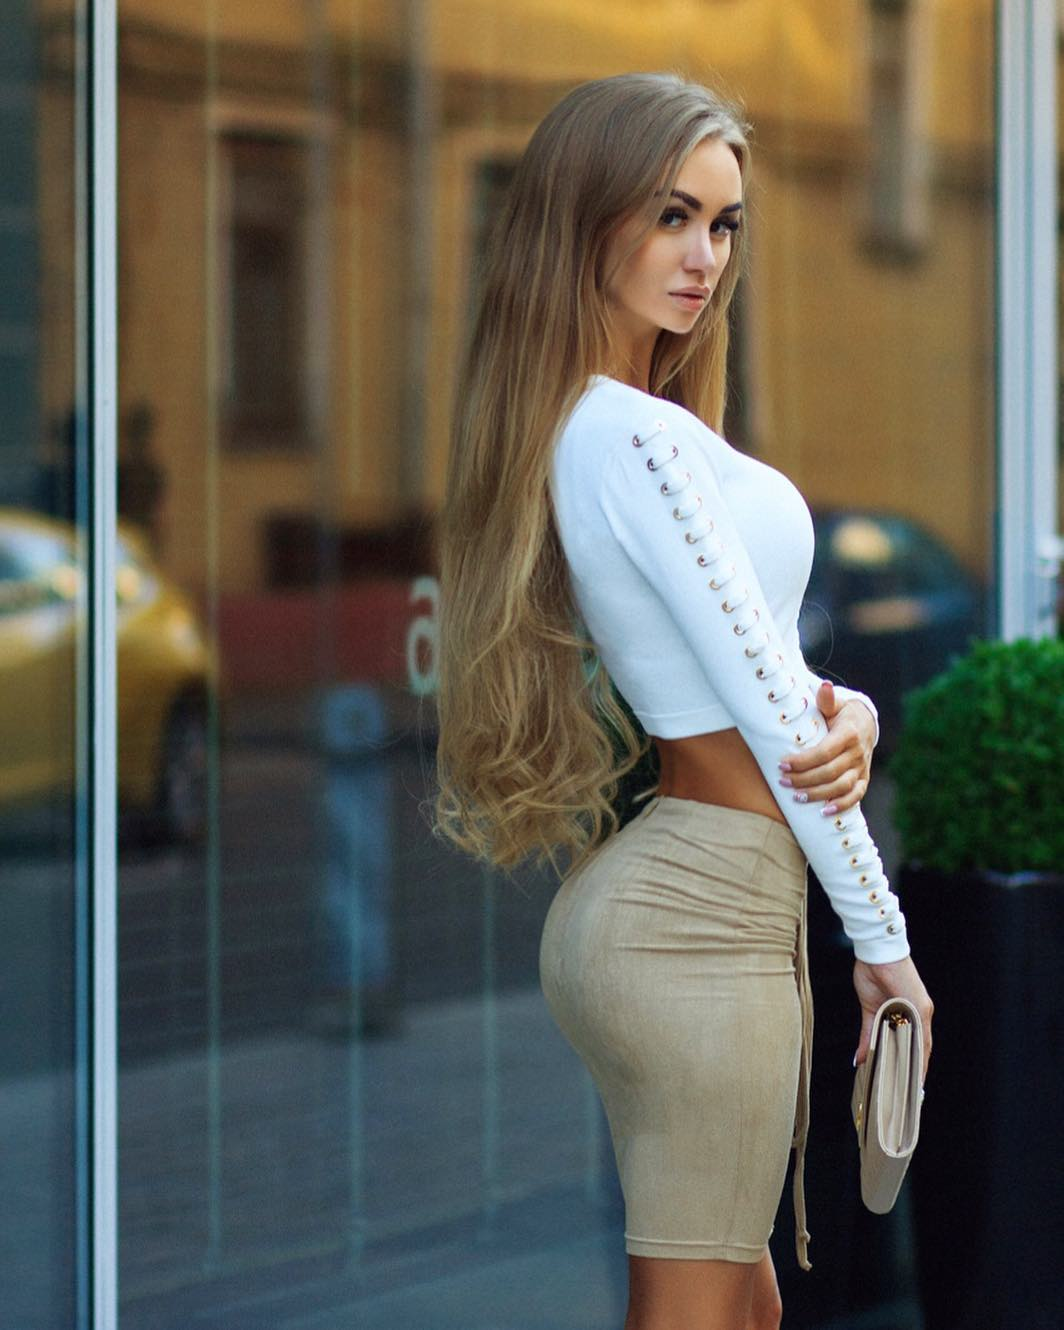 Valenti-Vitel-Wallpapers-Insta-Fit-Bio-7